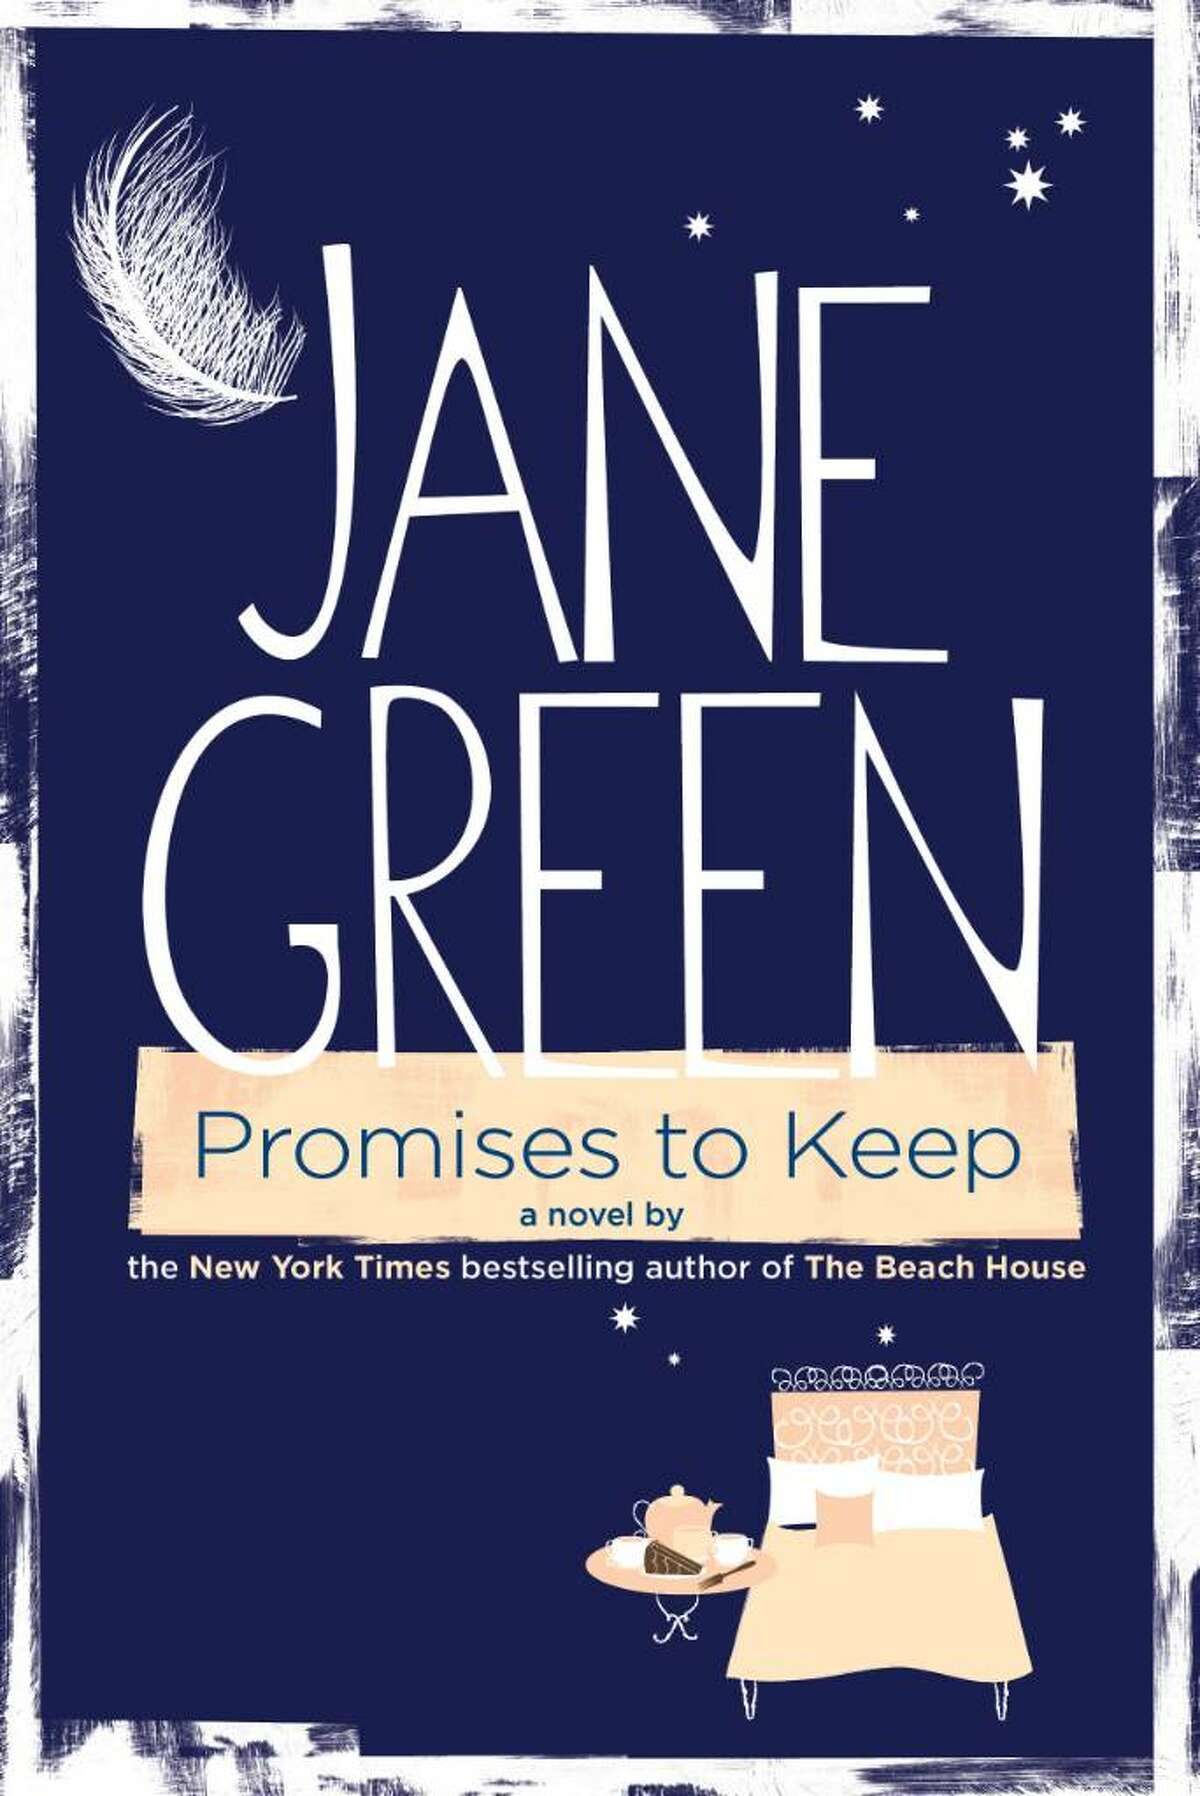 Westport author Jane Green's latest novel, Promises to Keep, discusses the sustainability of platonic friendships, especially in the throes of dealing with a fatal illness.